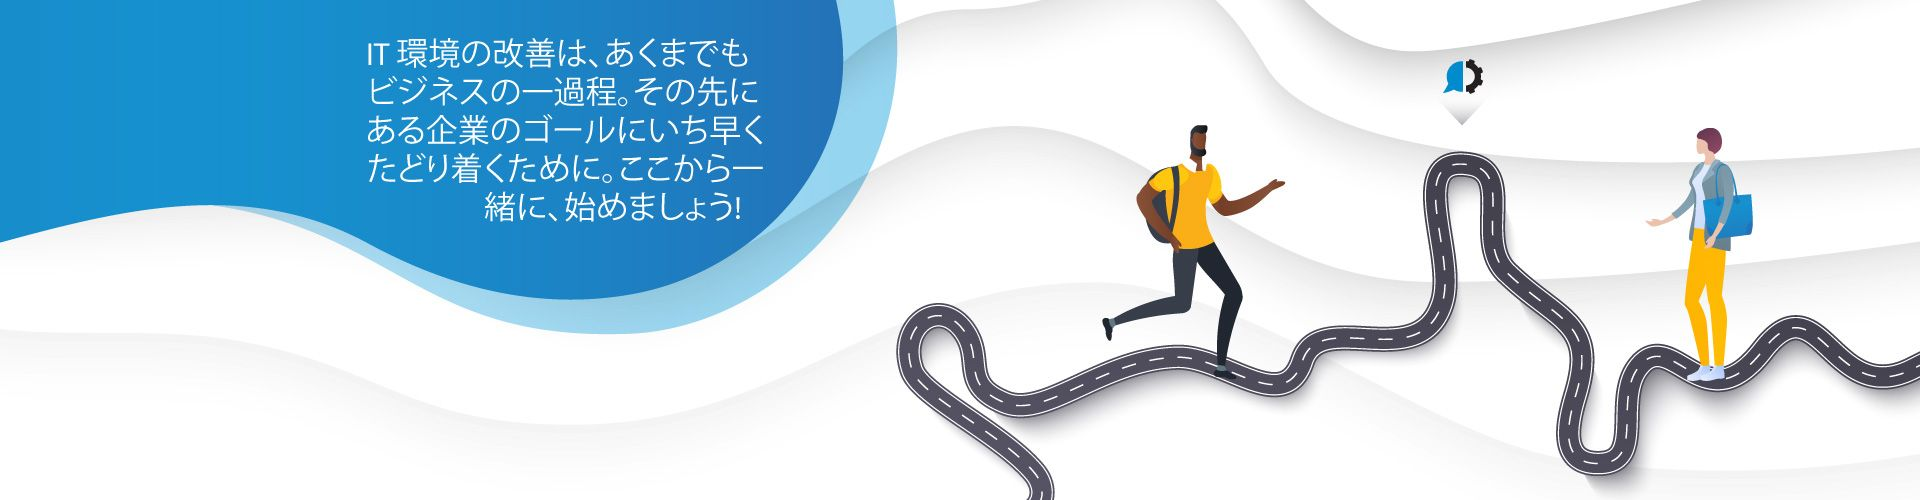 IT Transformation is a Journey not a destination. Lets move forward.